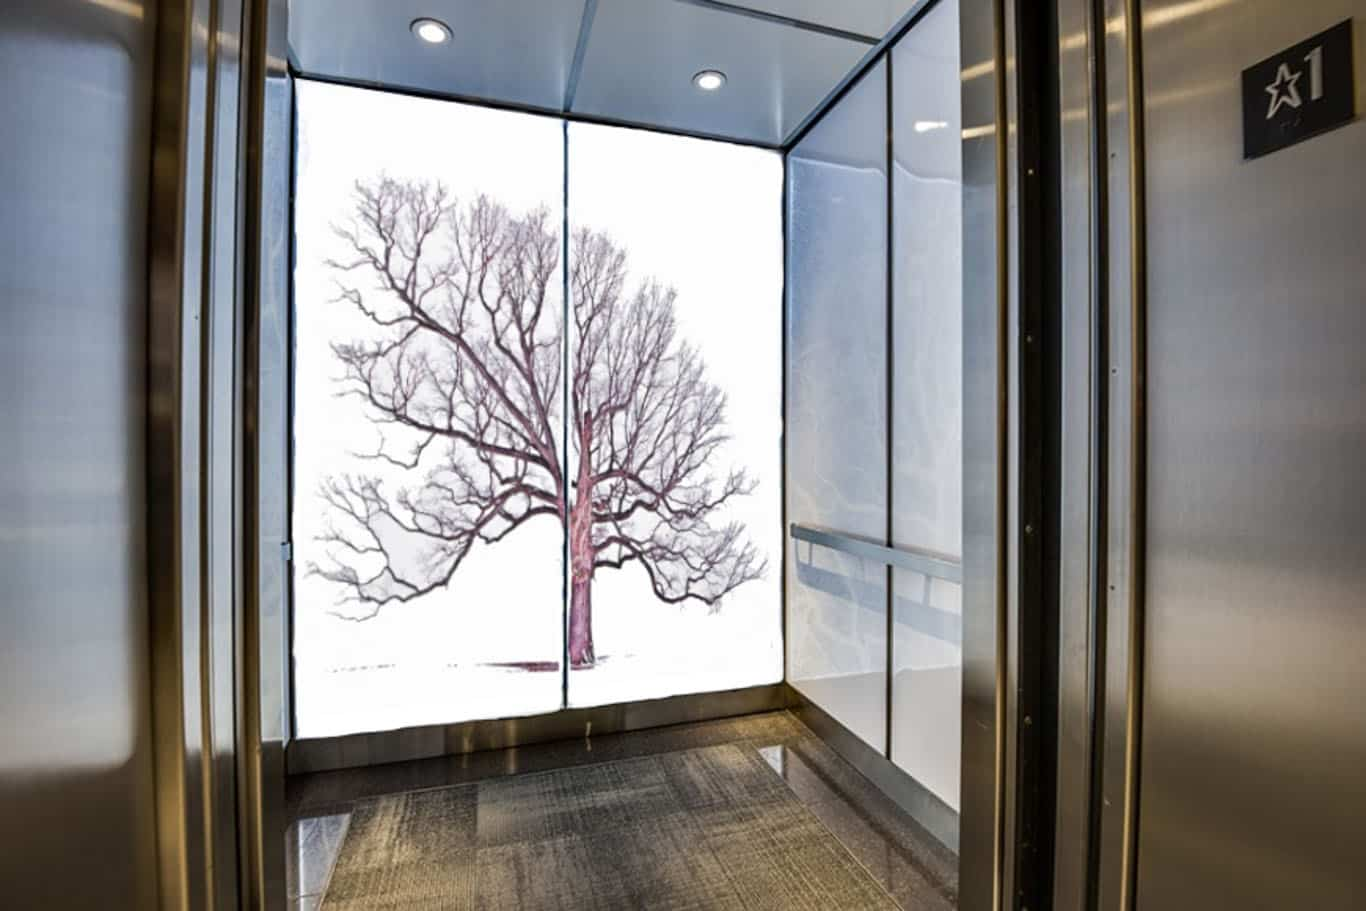 Commercial Applications of Digitally Printed Glass of an Elevator Cab with a large tree